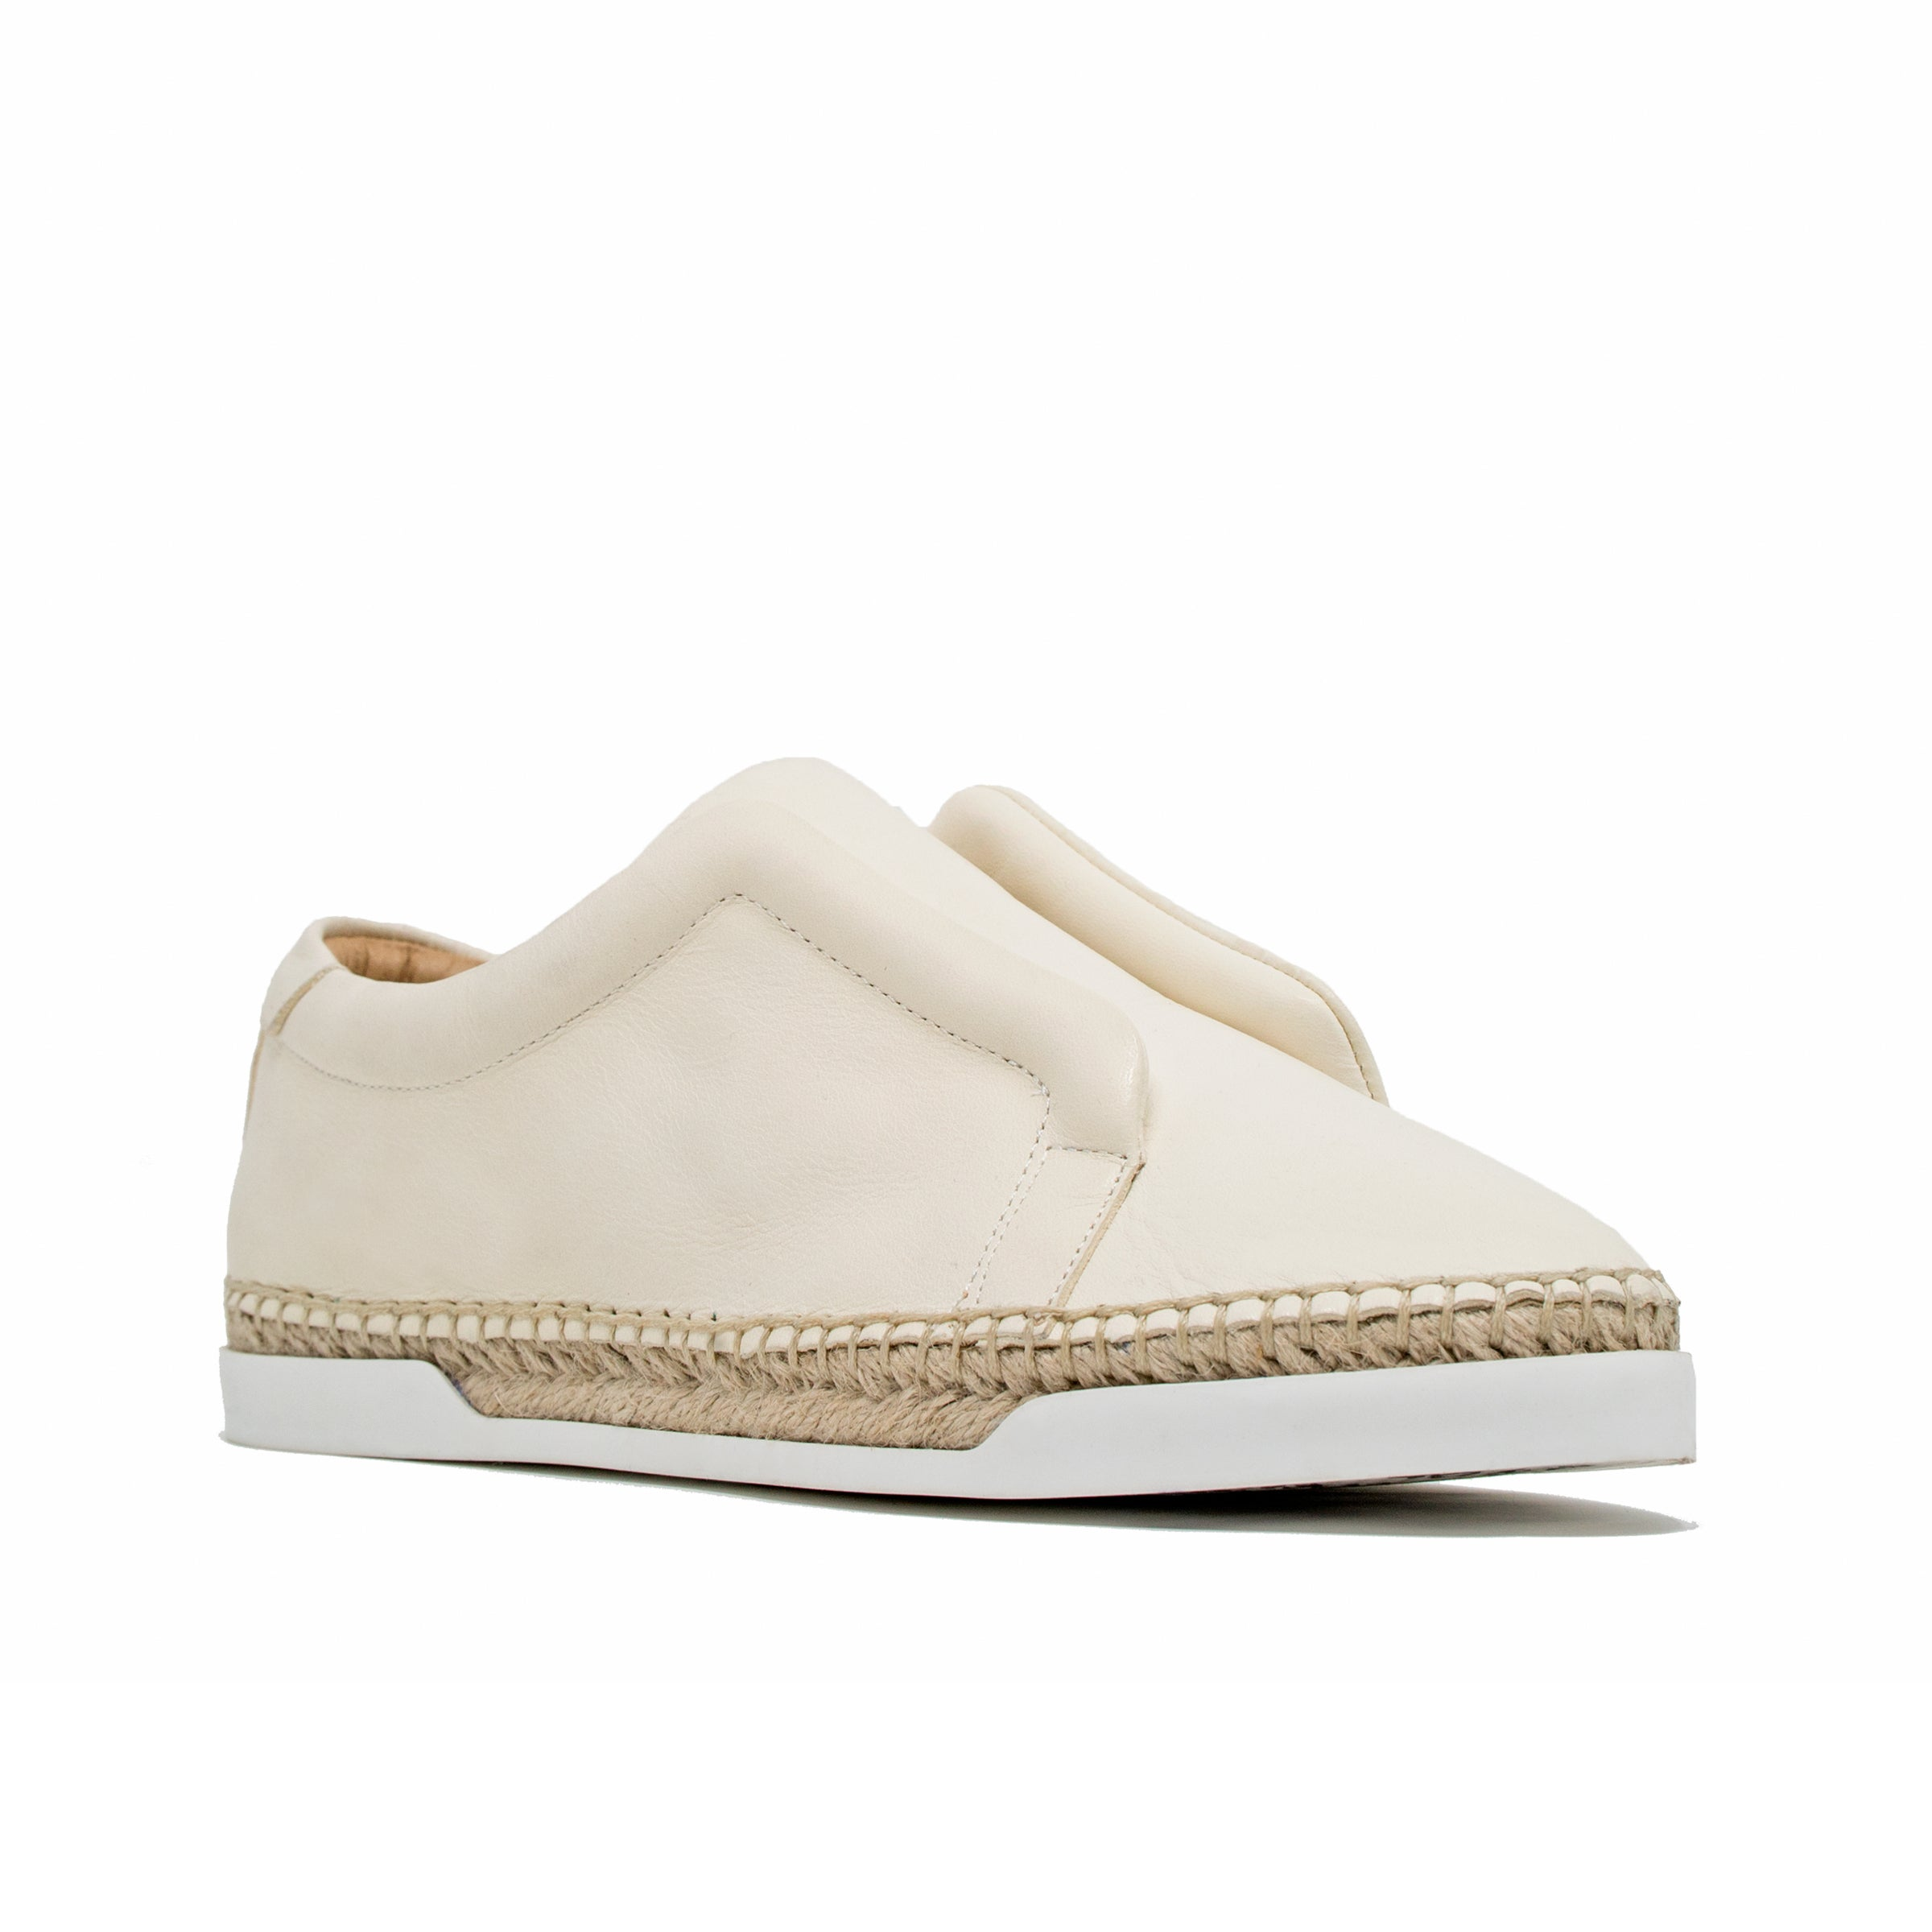 M4d3 Elizabeth White Leather Espadrille Sneaker M4d3 Shoes